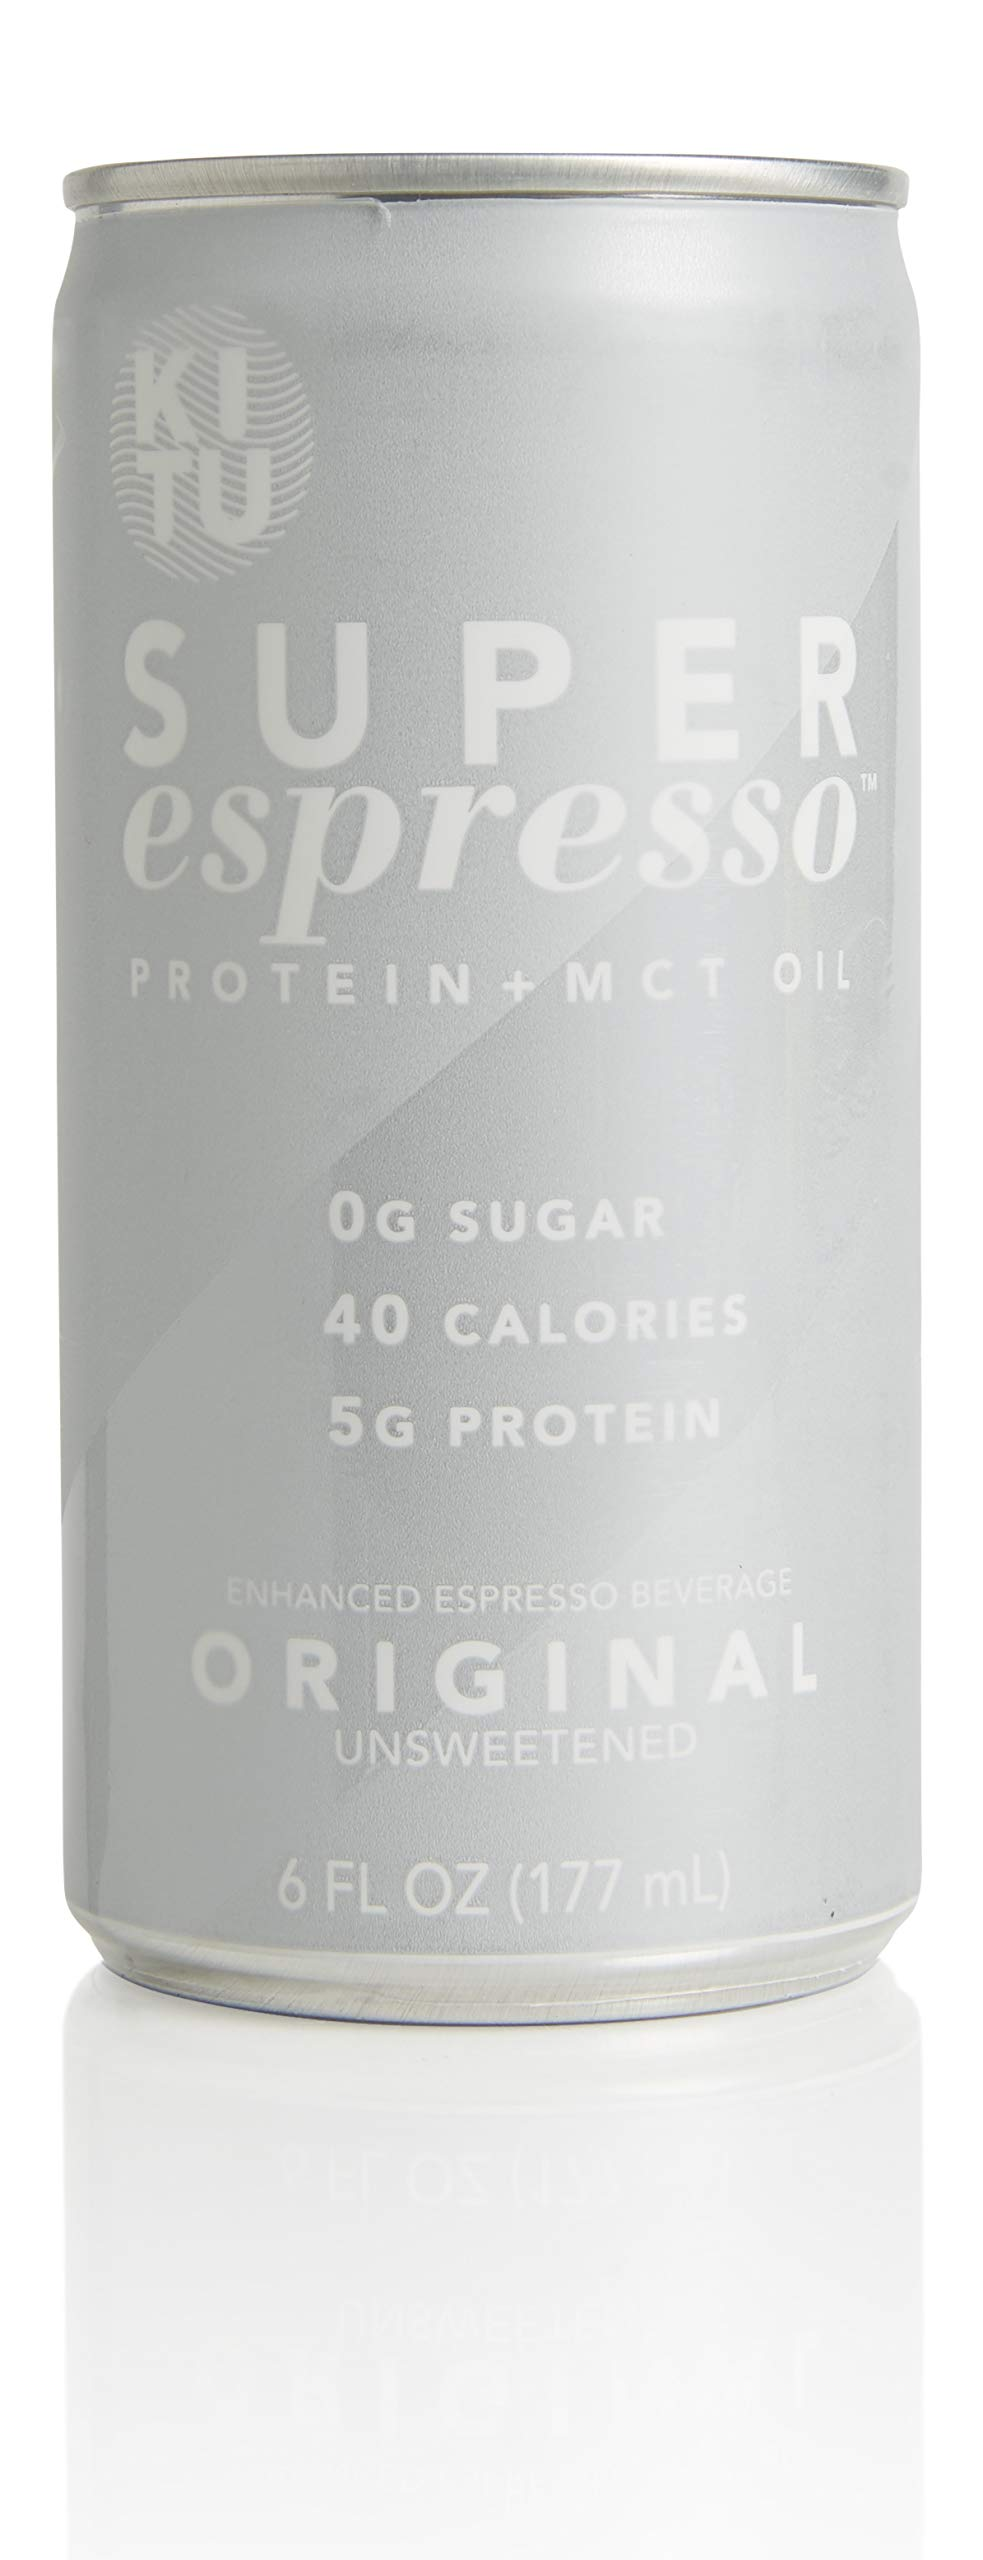 Kitu by SUNNIVA Original Super Espresso with Protein and MCT Oil, Keto Approved, 0g Sugar, 5g Protein, 40 Calories, 6 fl. oz, Pack of 12 by SUNNIVA SUPER COFFEE (Image #2)